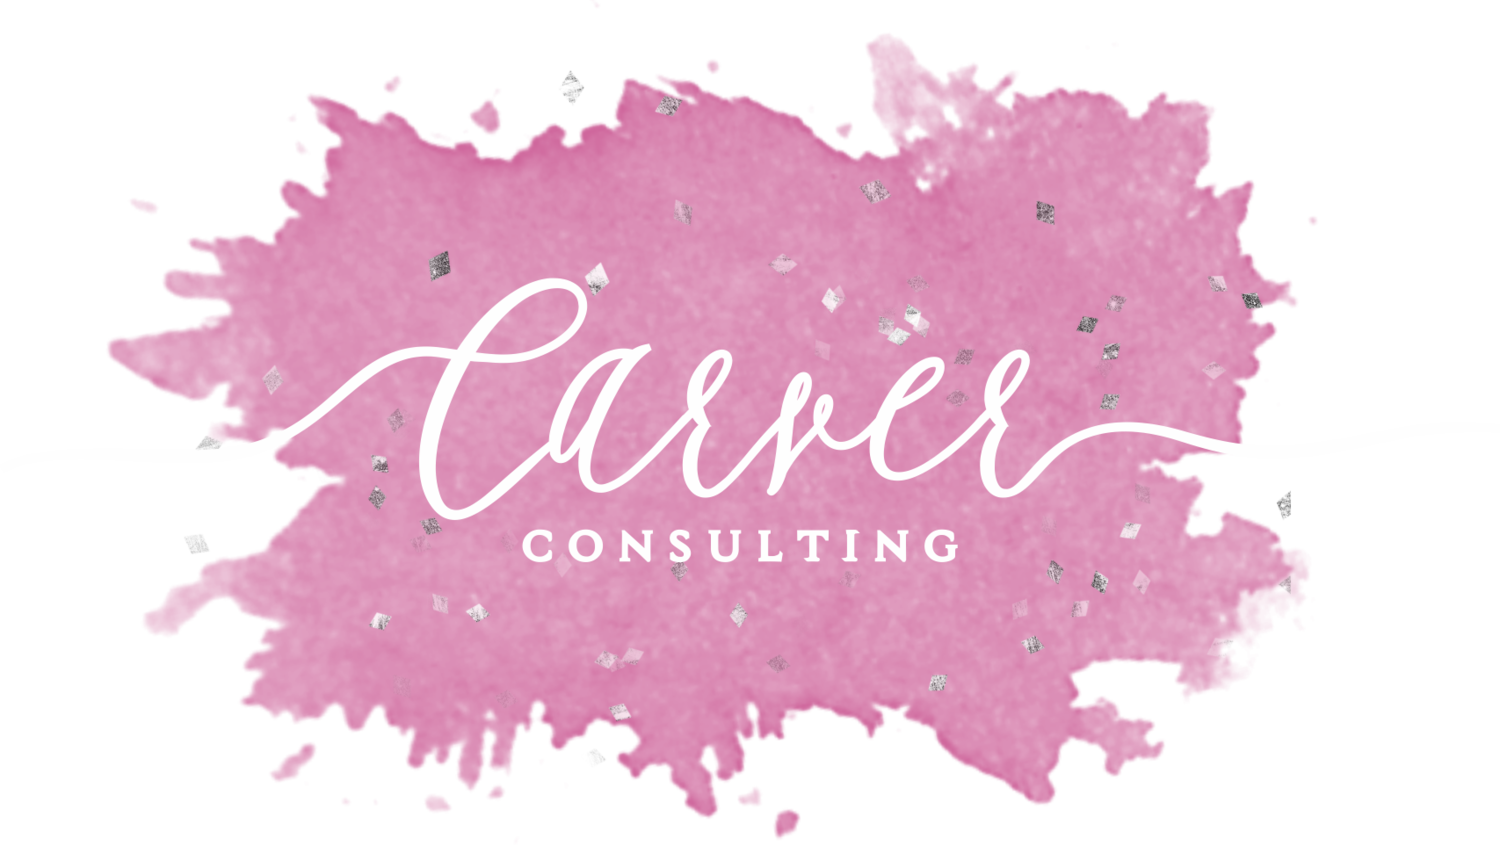 Carver Consulting